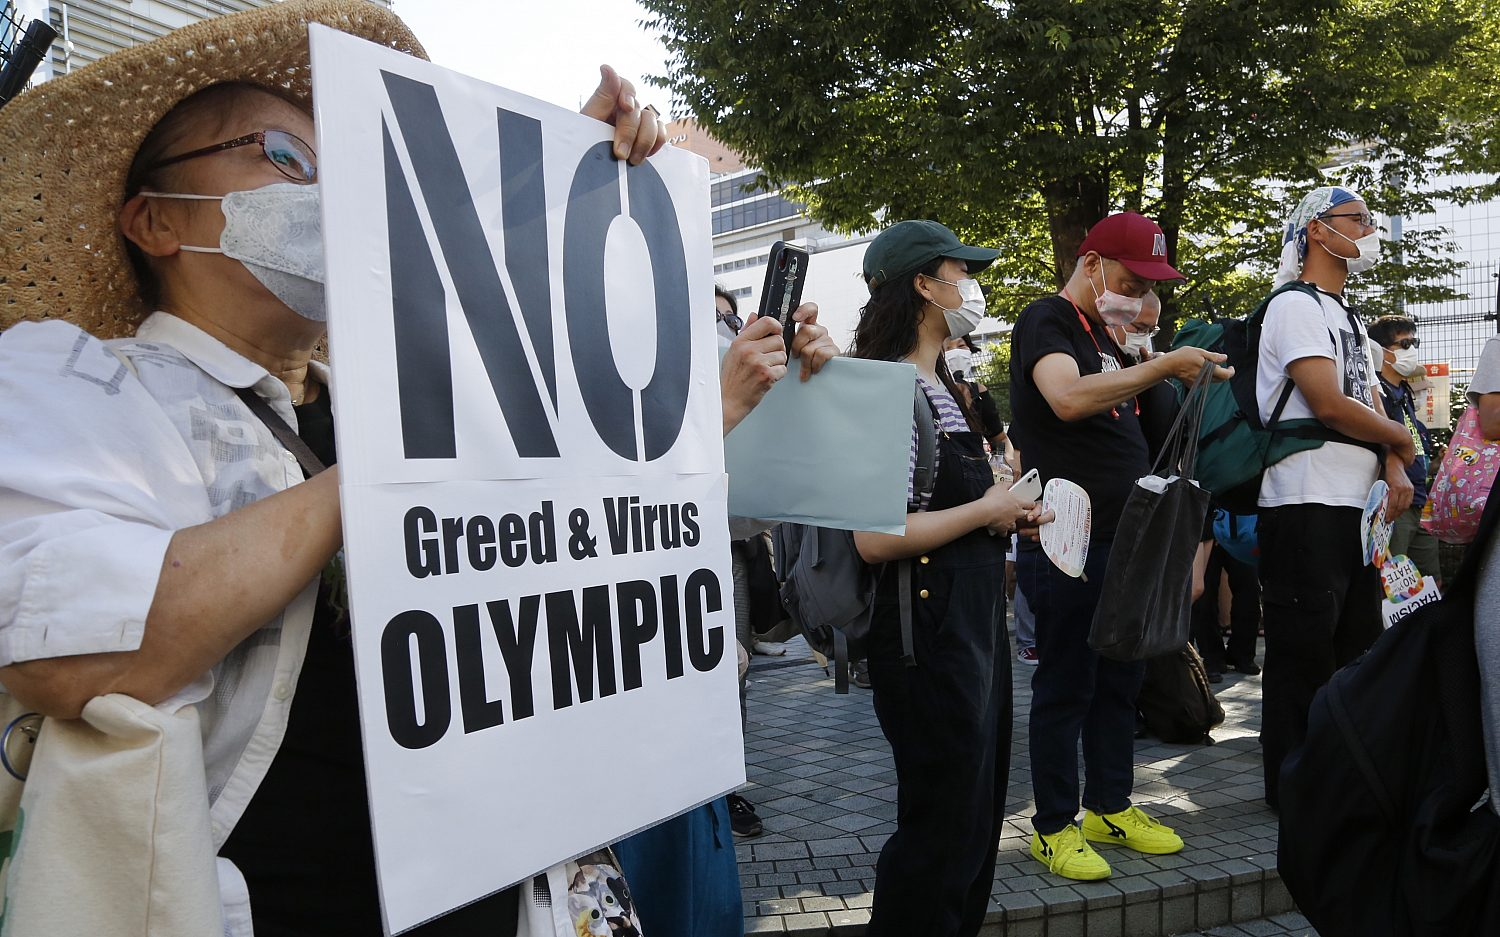 Athletes test positive for Covid-19 inside Olympic Village